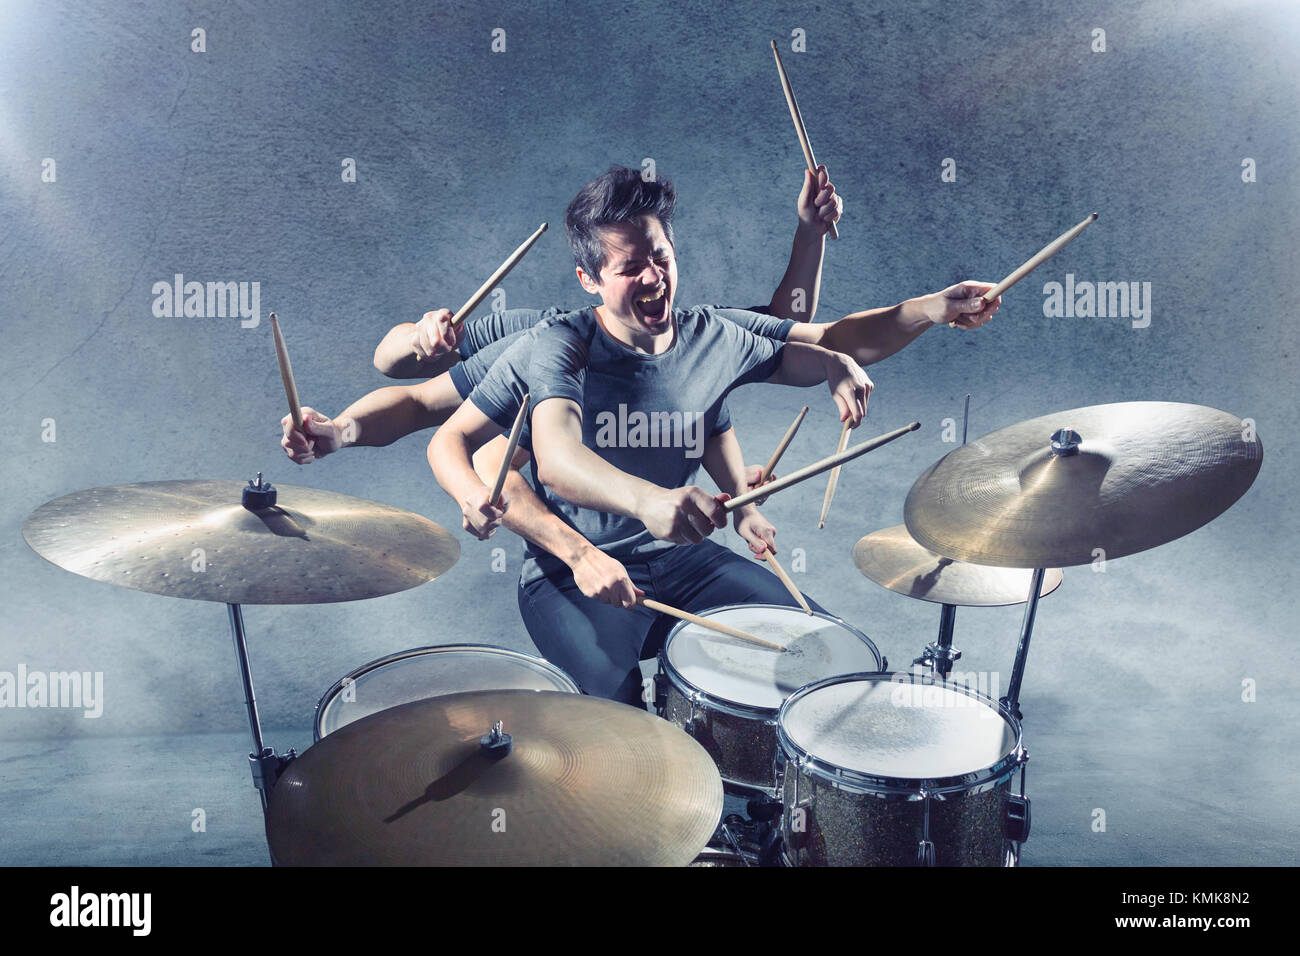 Drummer with multiple arms - Stock Image